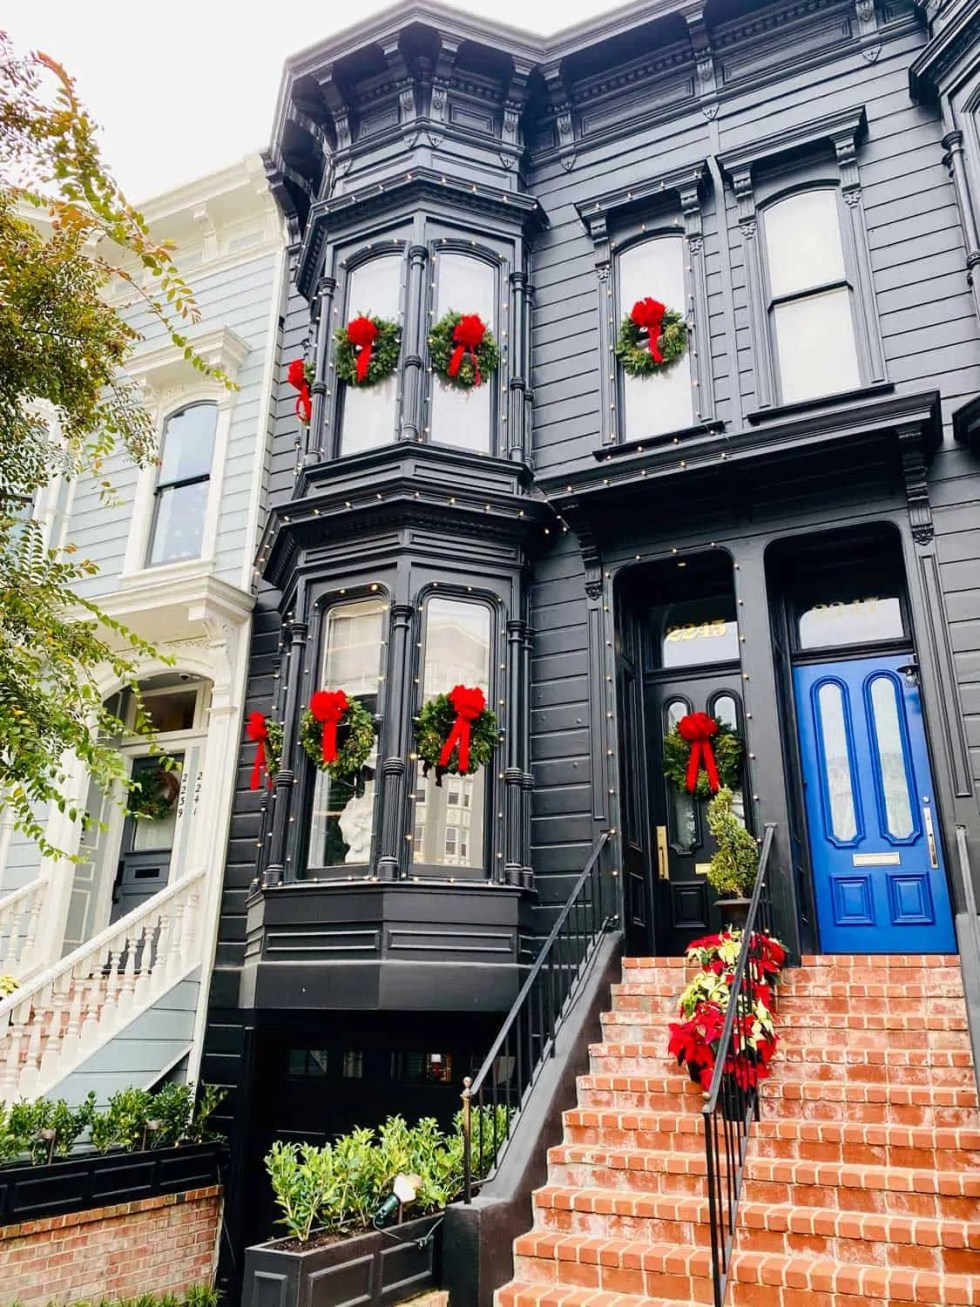 Black Victorian Home with Christmas Wreaths